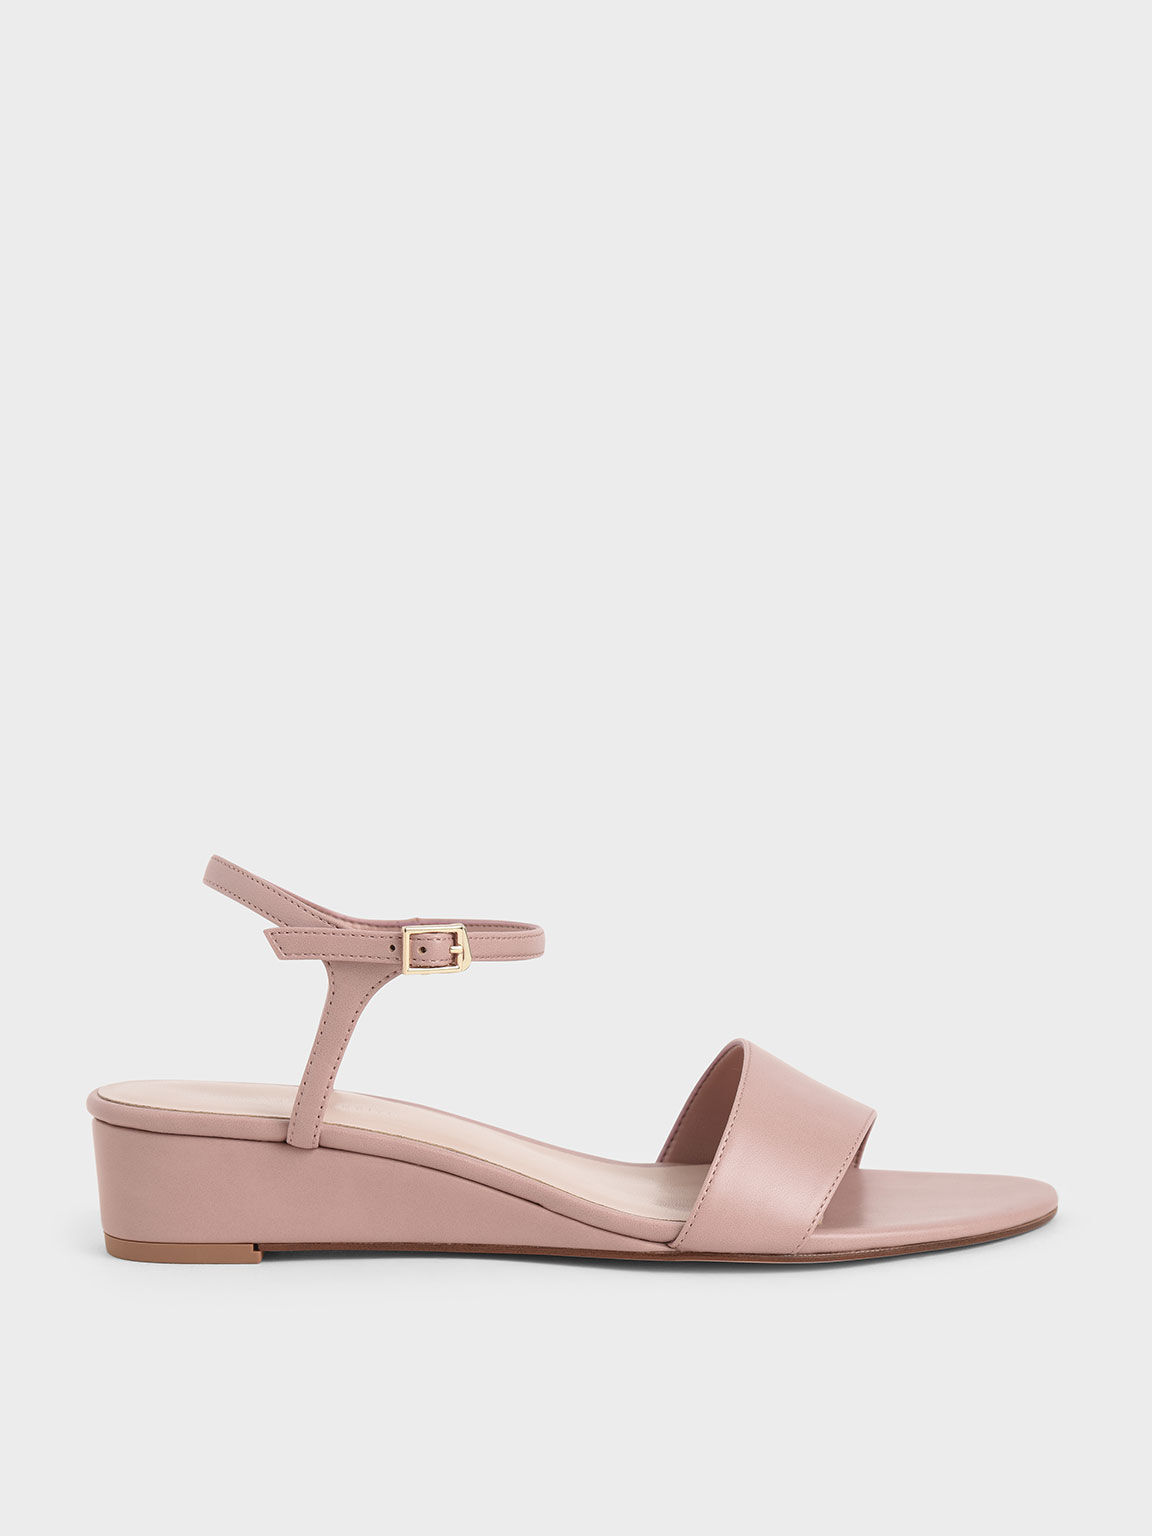 Asymmetric Wedge Sandals, Pink, hi-res